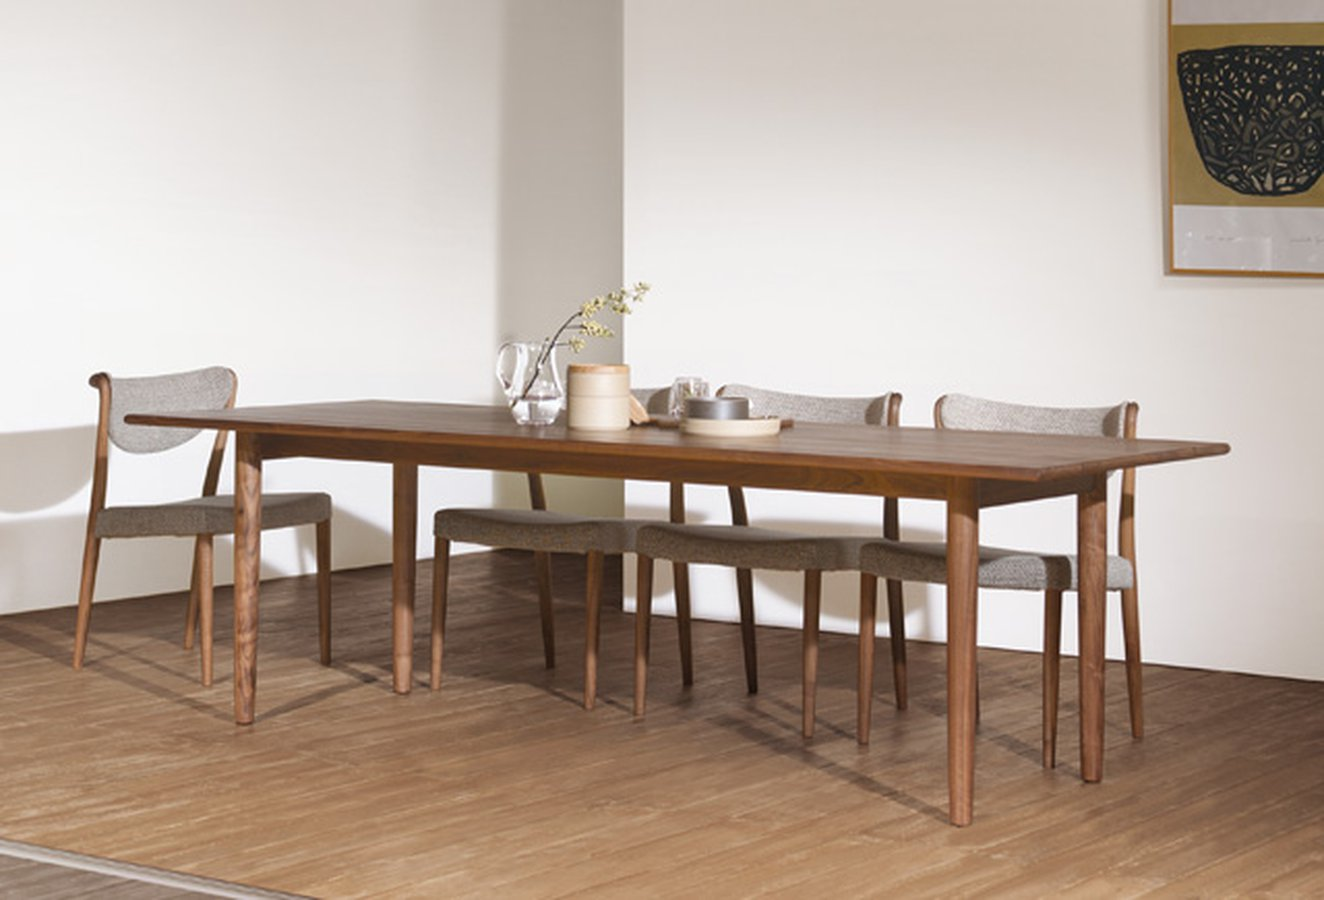 The MC Wood Table By Ritzwell Is Finest Expression Of Modern Living Concept Finesse And Simplicity Are Result Precious Seductive Detailing